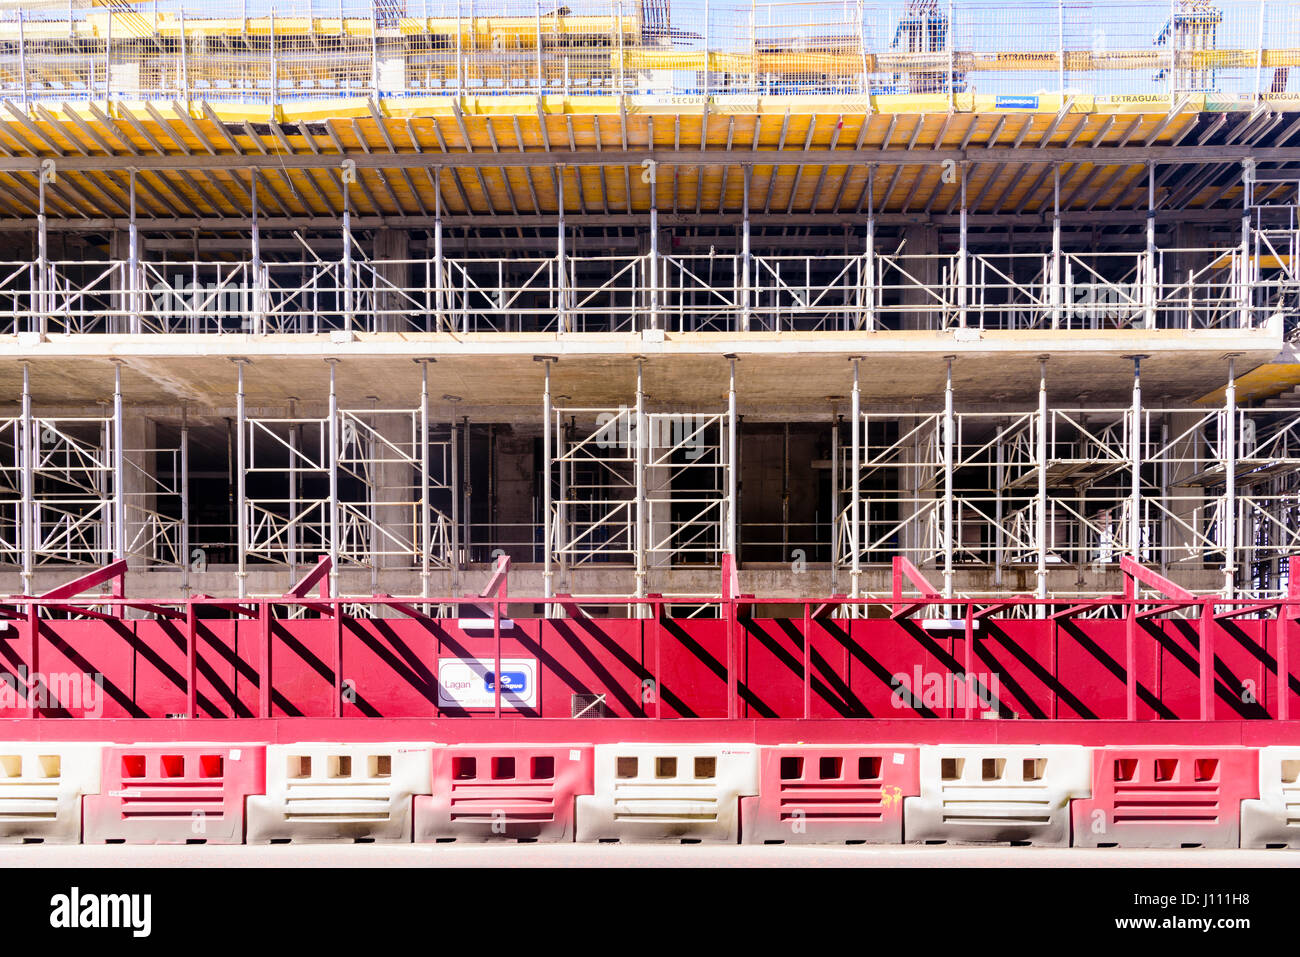 Scaffold and barriers at a building site. - Stock Image